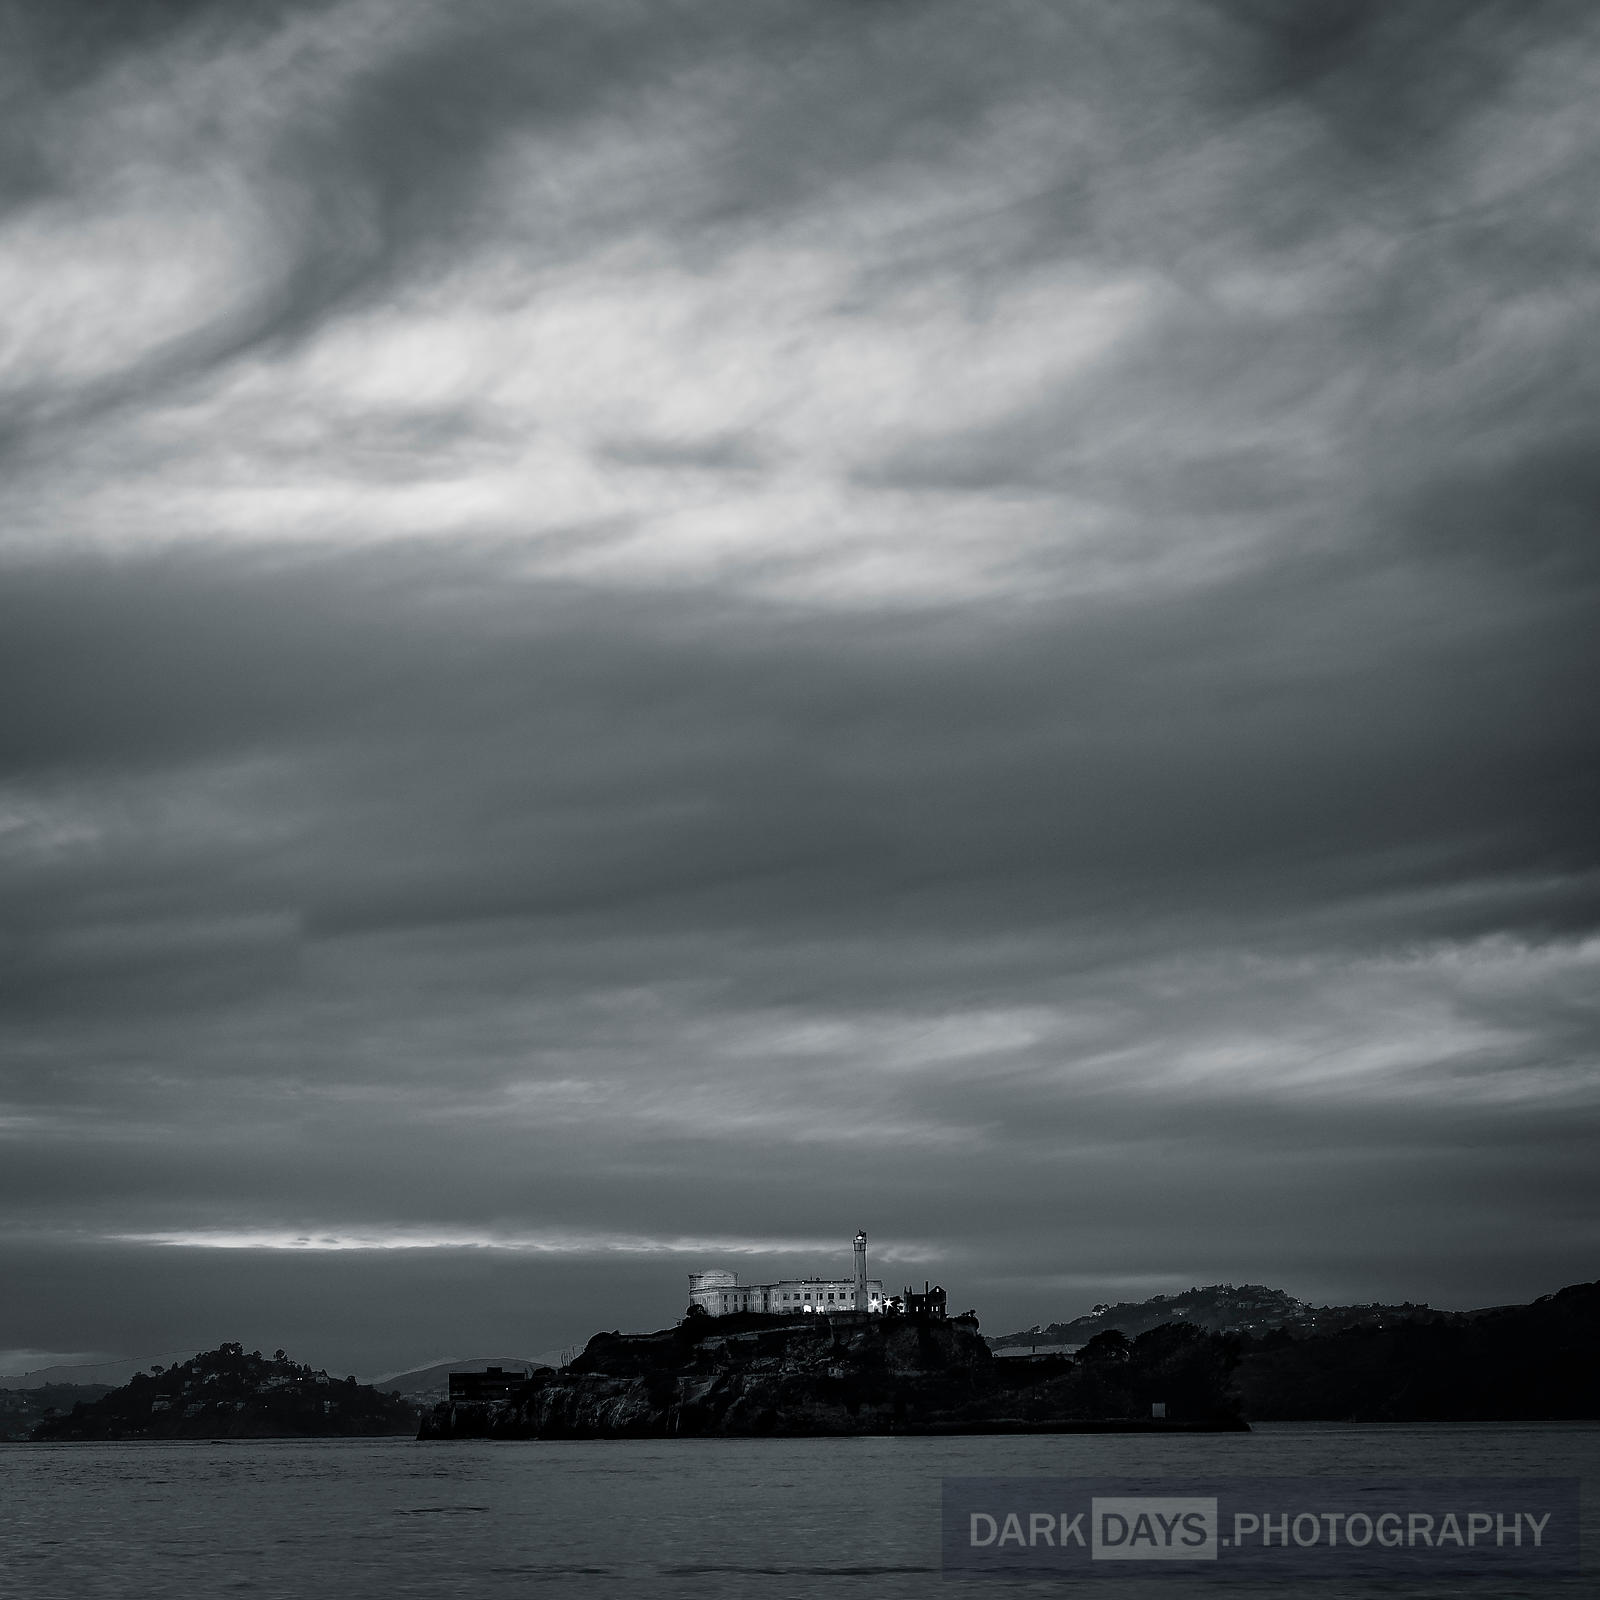 USA - California - San Francisco (Alcatraz - Darkness Falls)